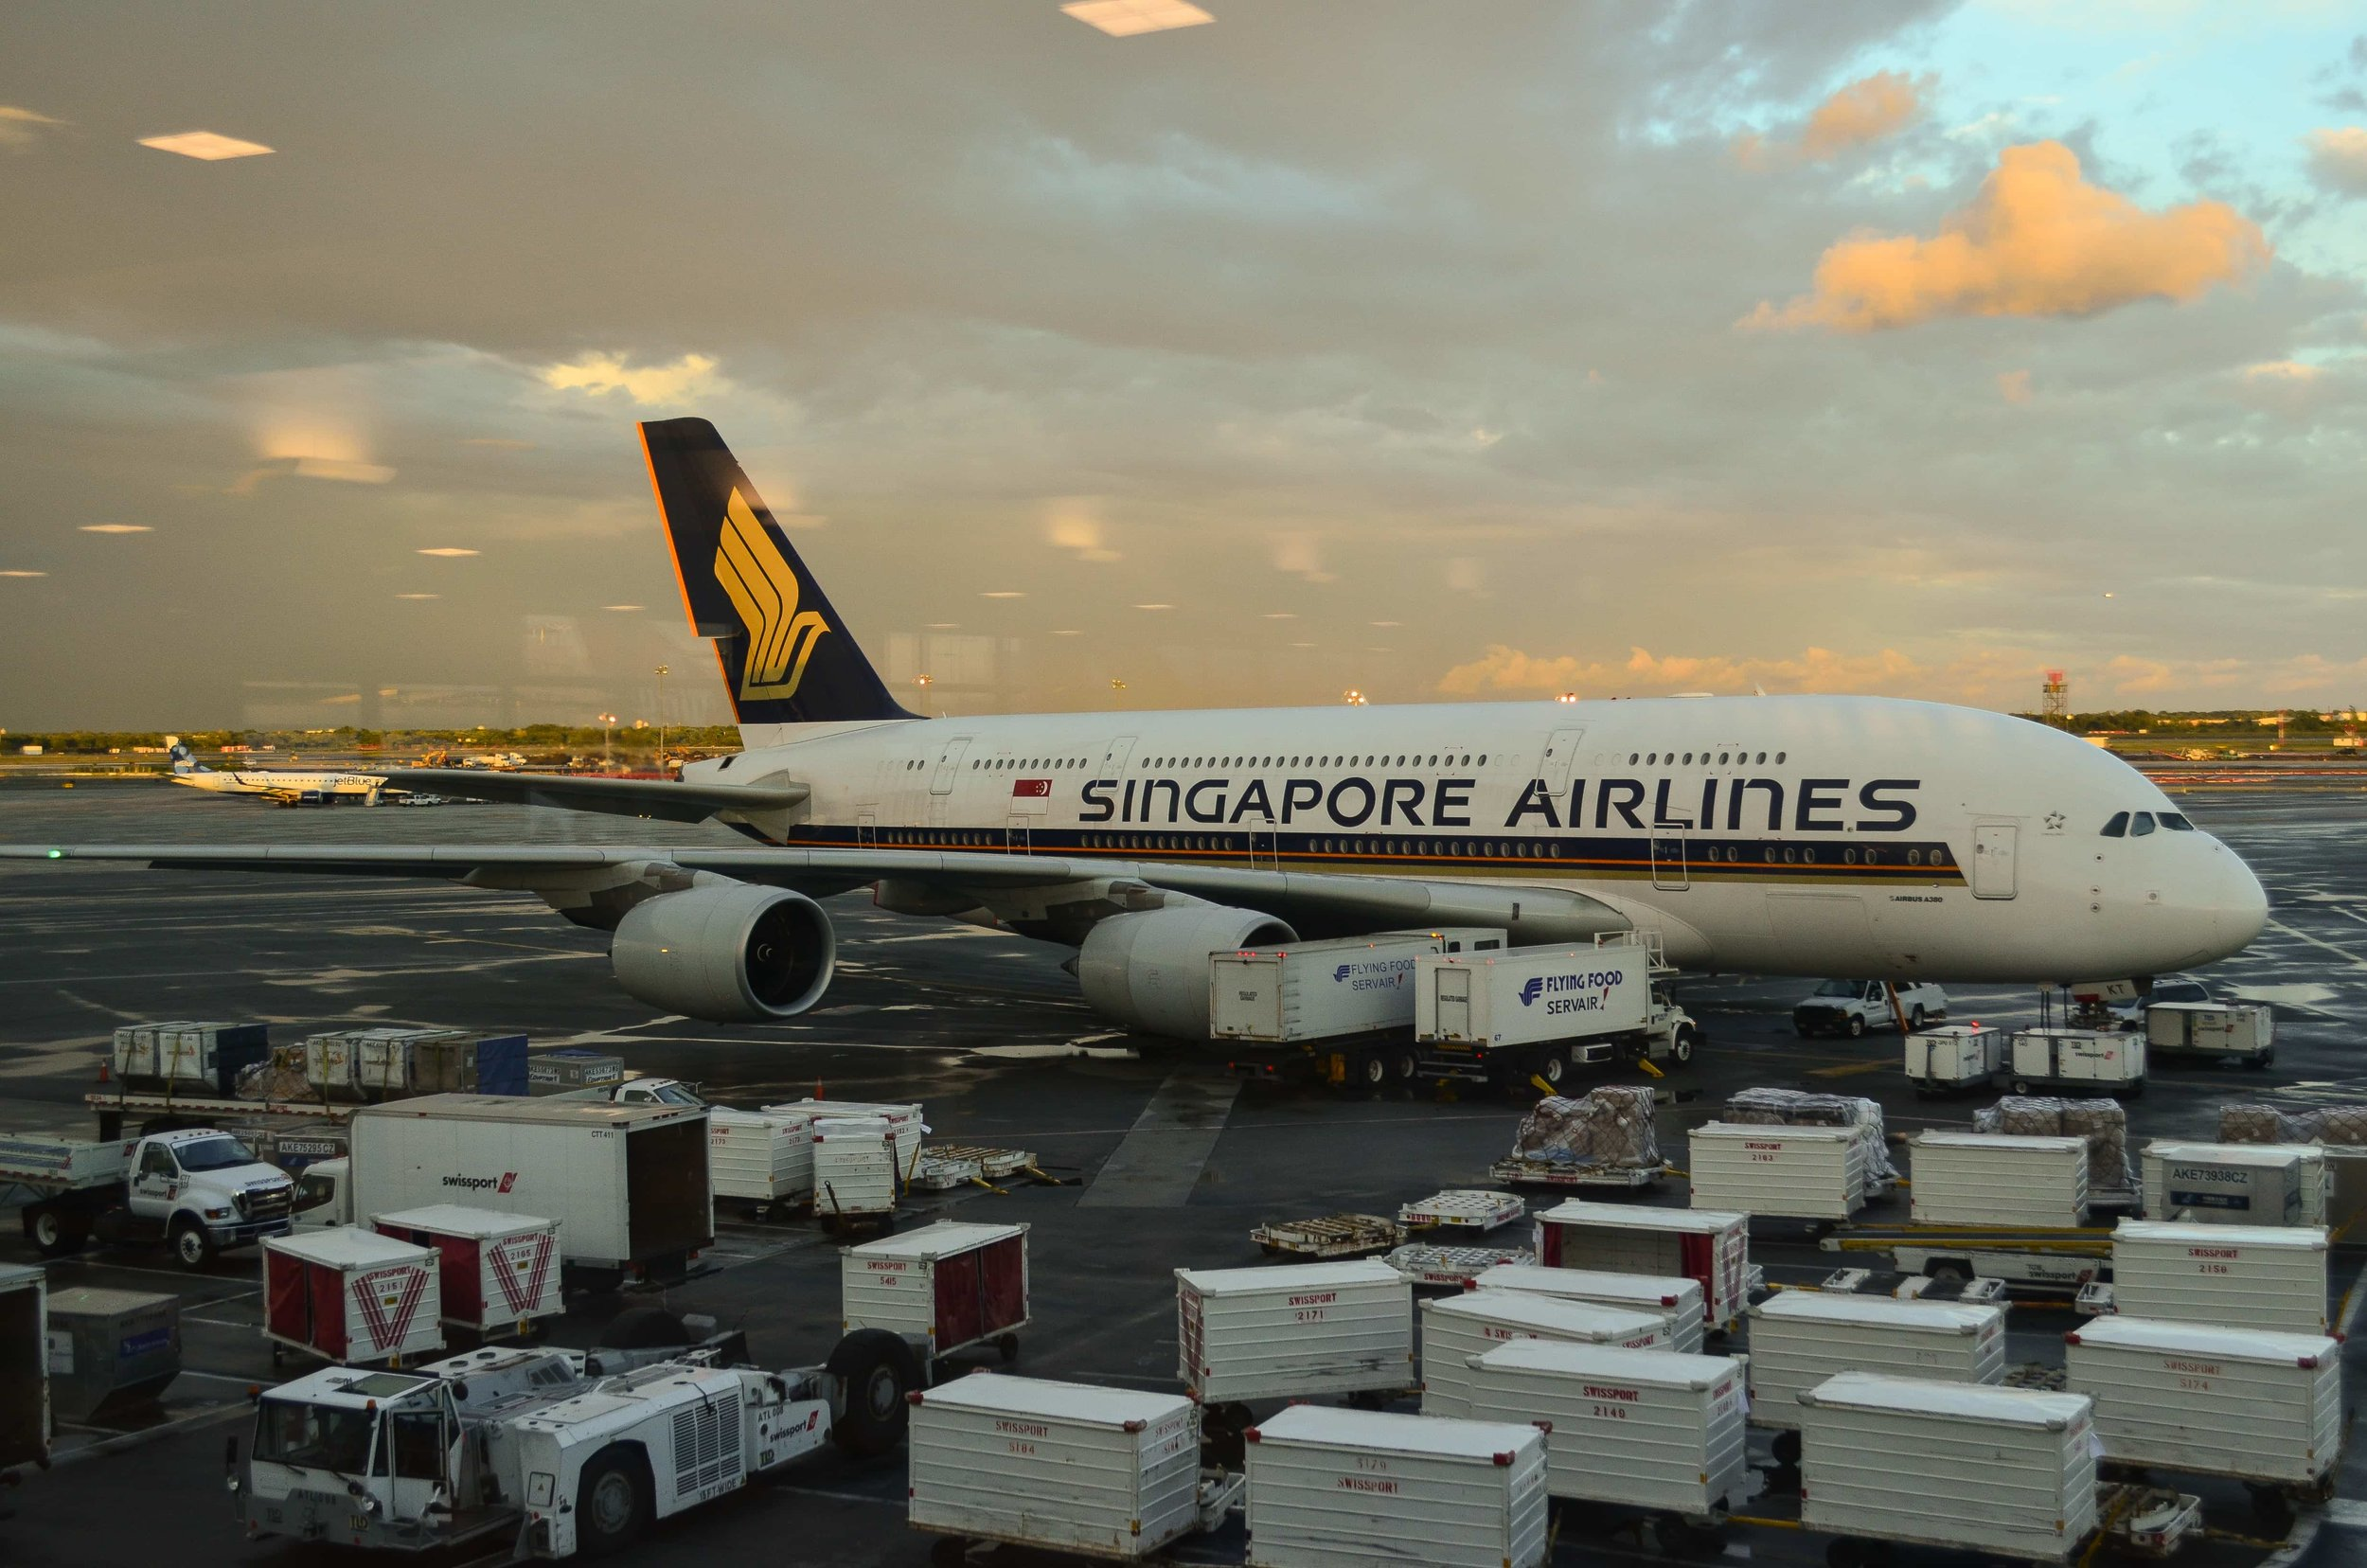 Singapore Airlines is one of the few carriers that operate A380s to New York's JFK,  photo from Flickr user Amiga-Commodore